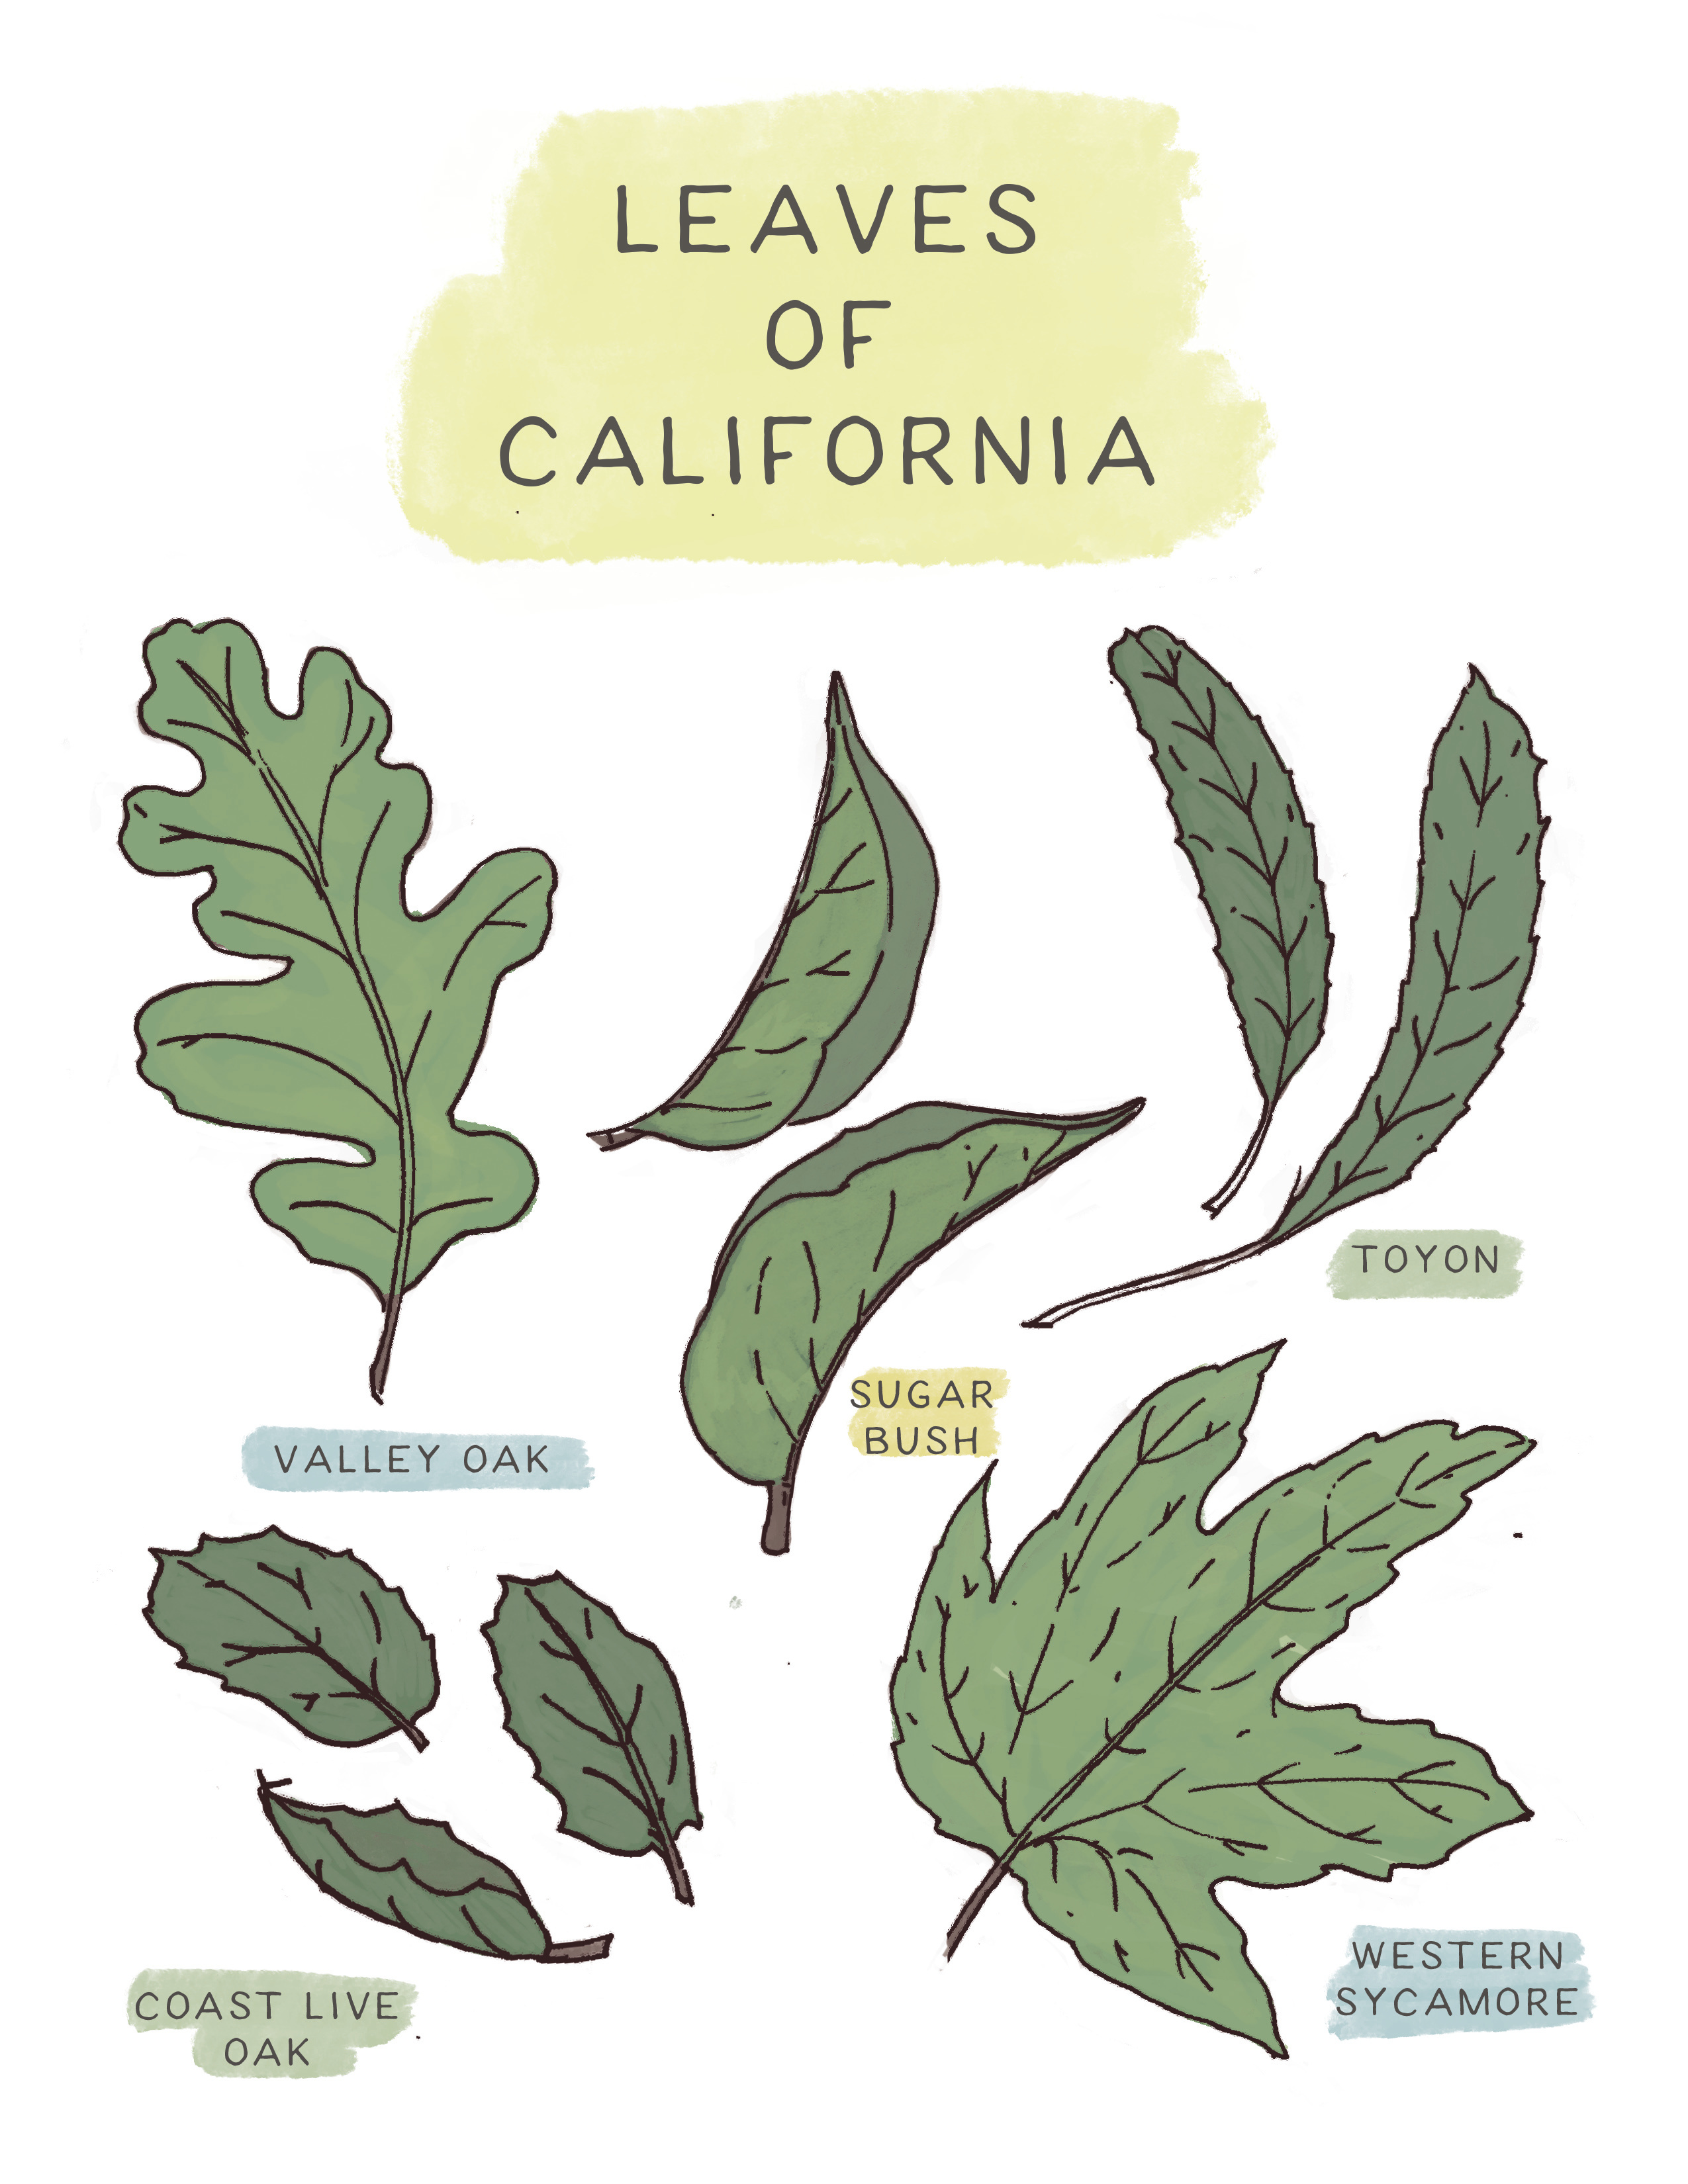 Leaves of California